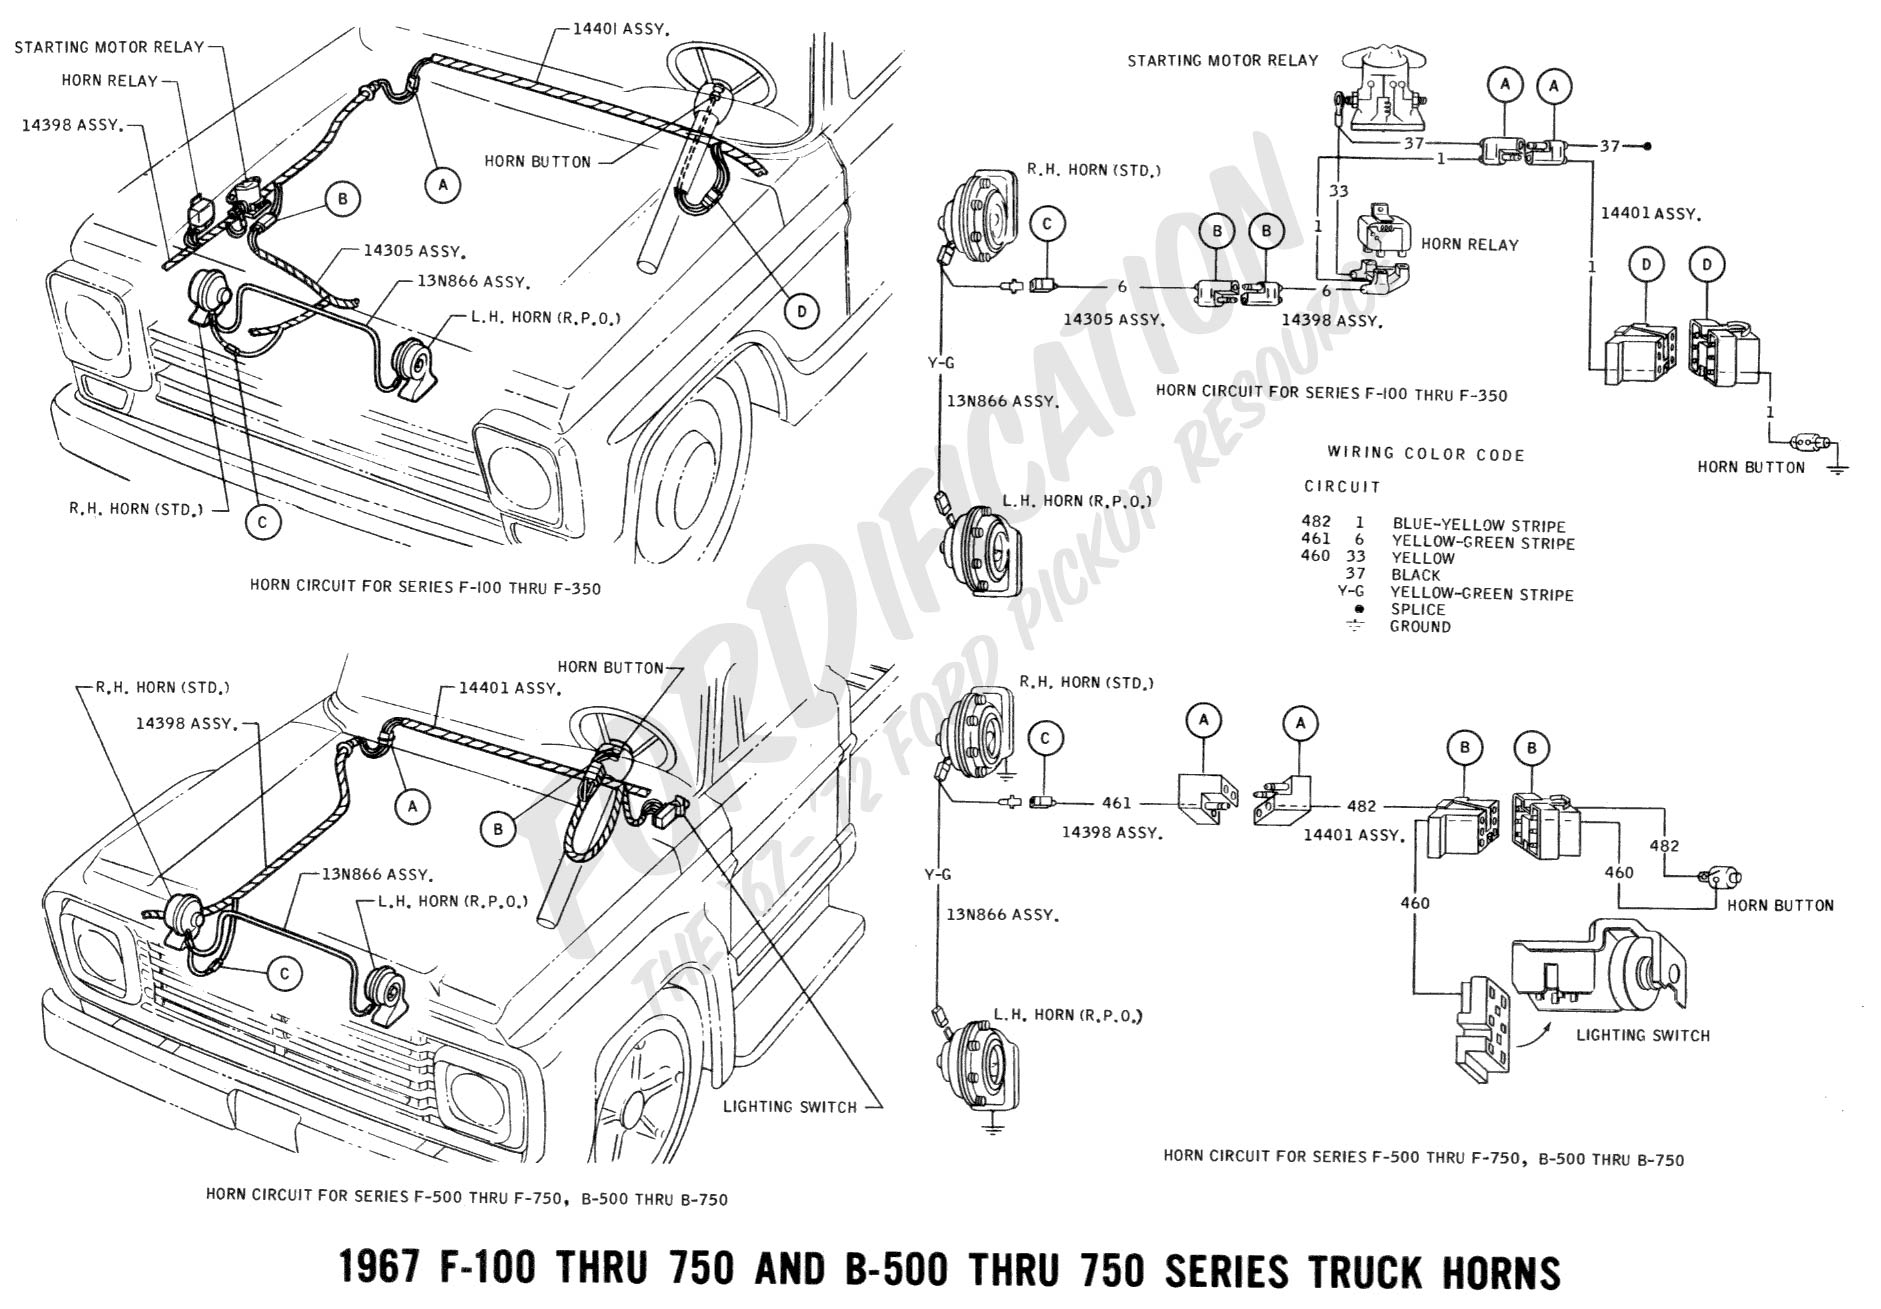 hight resolution of ford truck technical drawings and schematics section h wiring1967 f 100 thru f 750 u0026